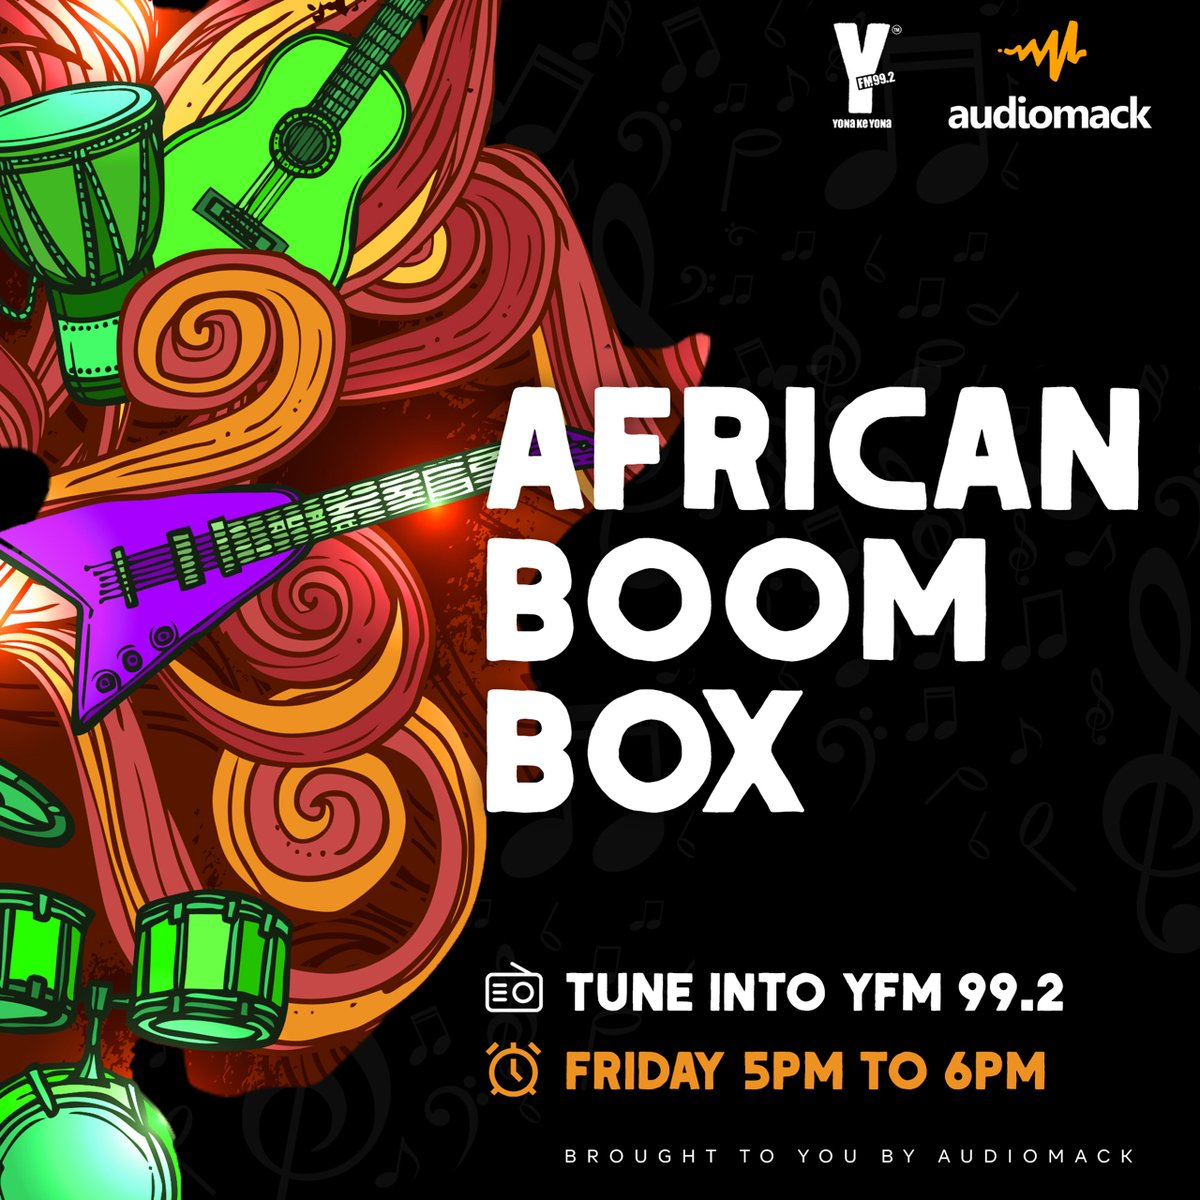 Every Friday on #TheBestDrive, we check out all new music and feature interviews of all our favourite African artists.   Don't miss African Boom Box every Friday from 5pm, brought to you by @audiomackafrica https://t.co/VOeZkb6mFb